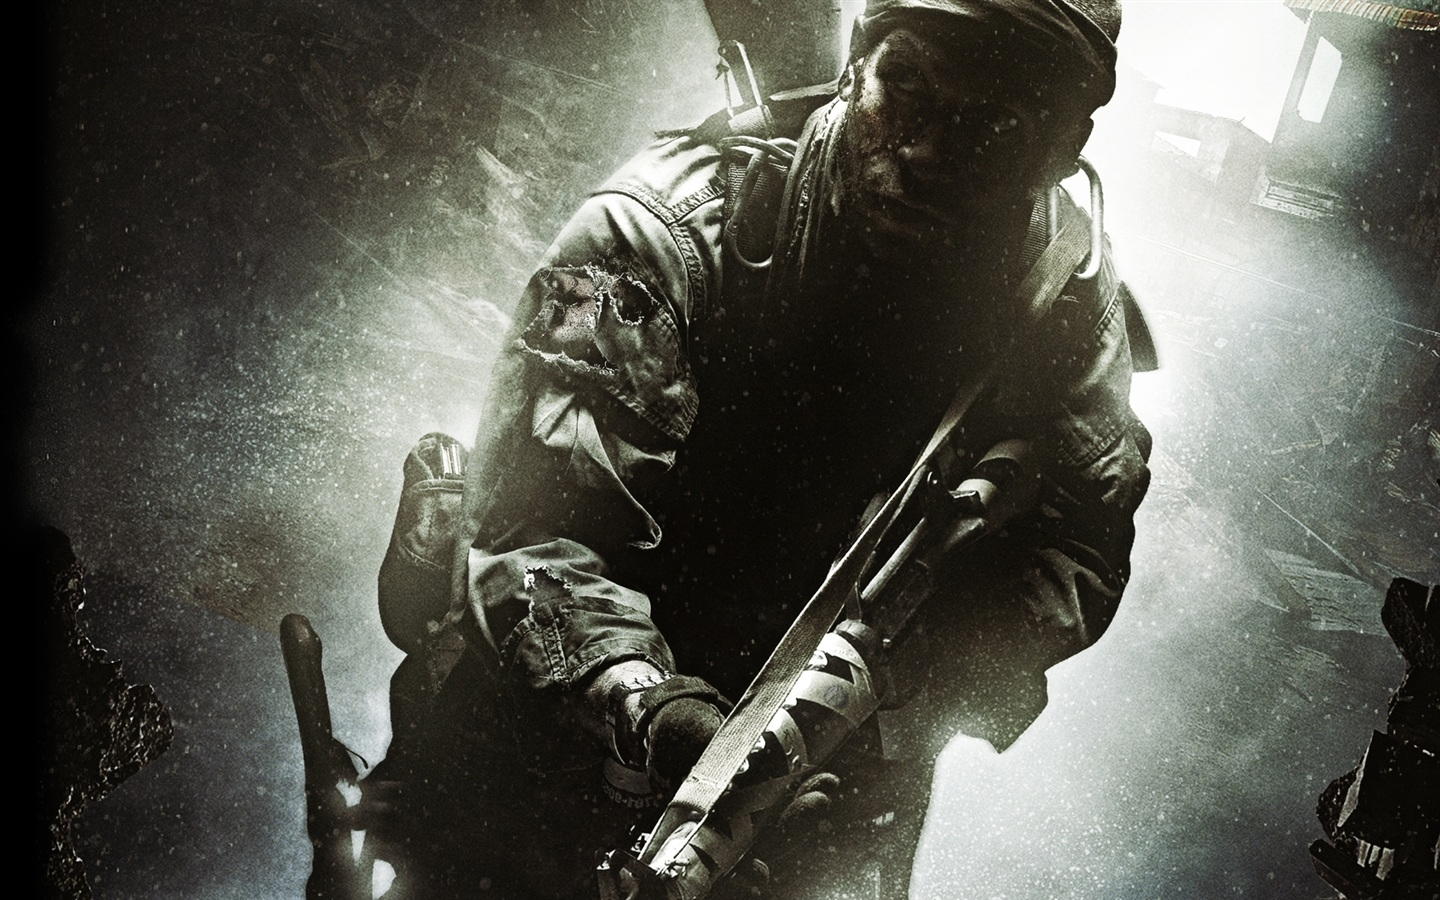 Call Of Duty Bo2 Wallpaper: Download Wallpaper 1440x900 Call Of Duty: Black Ops 2 Game